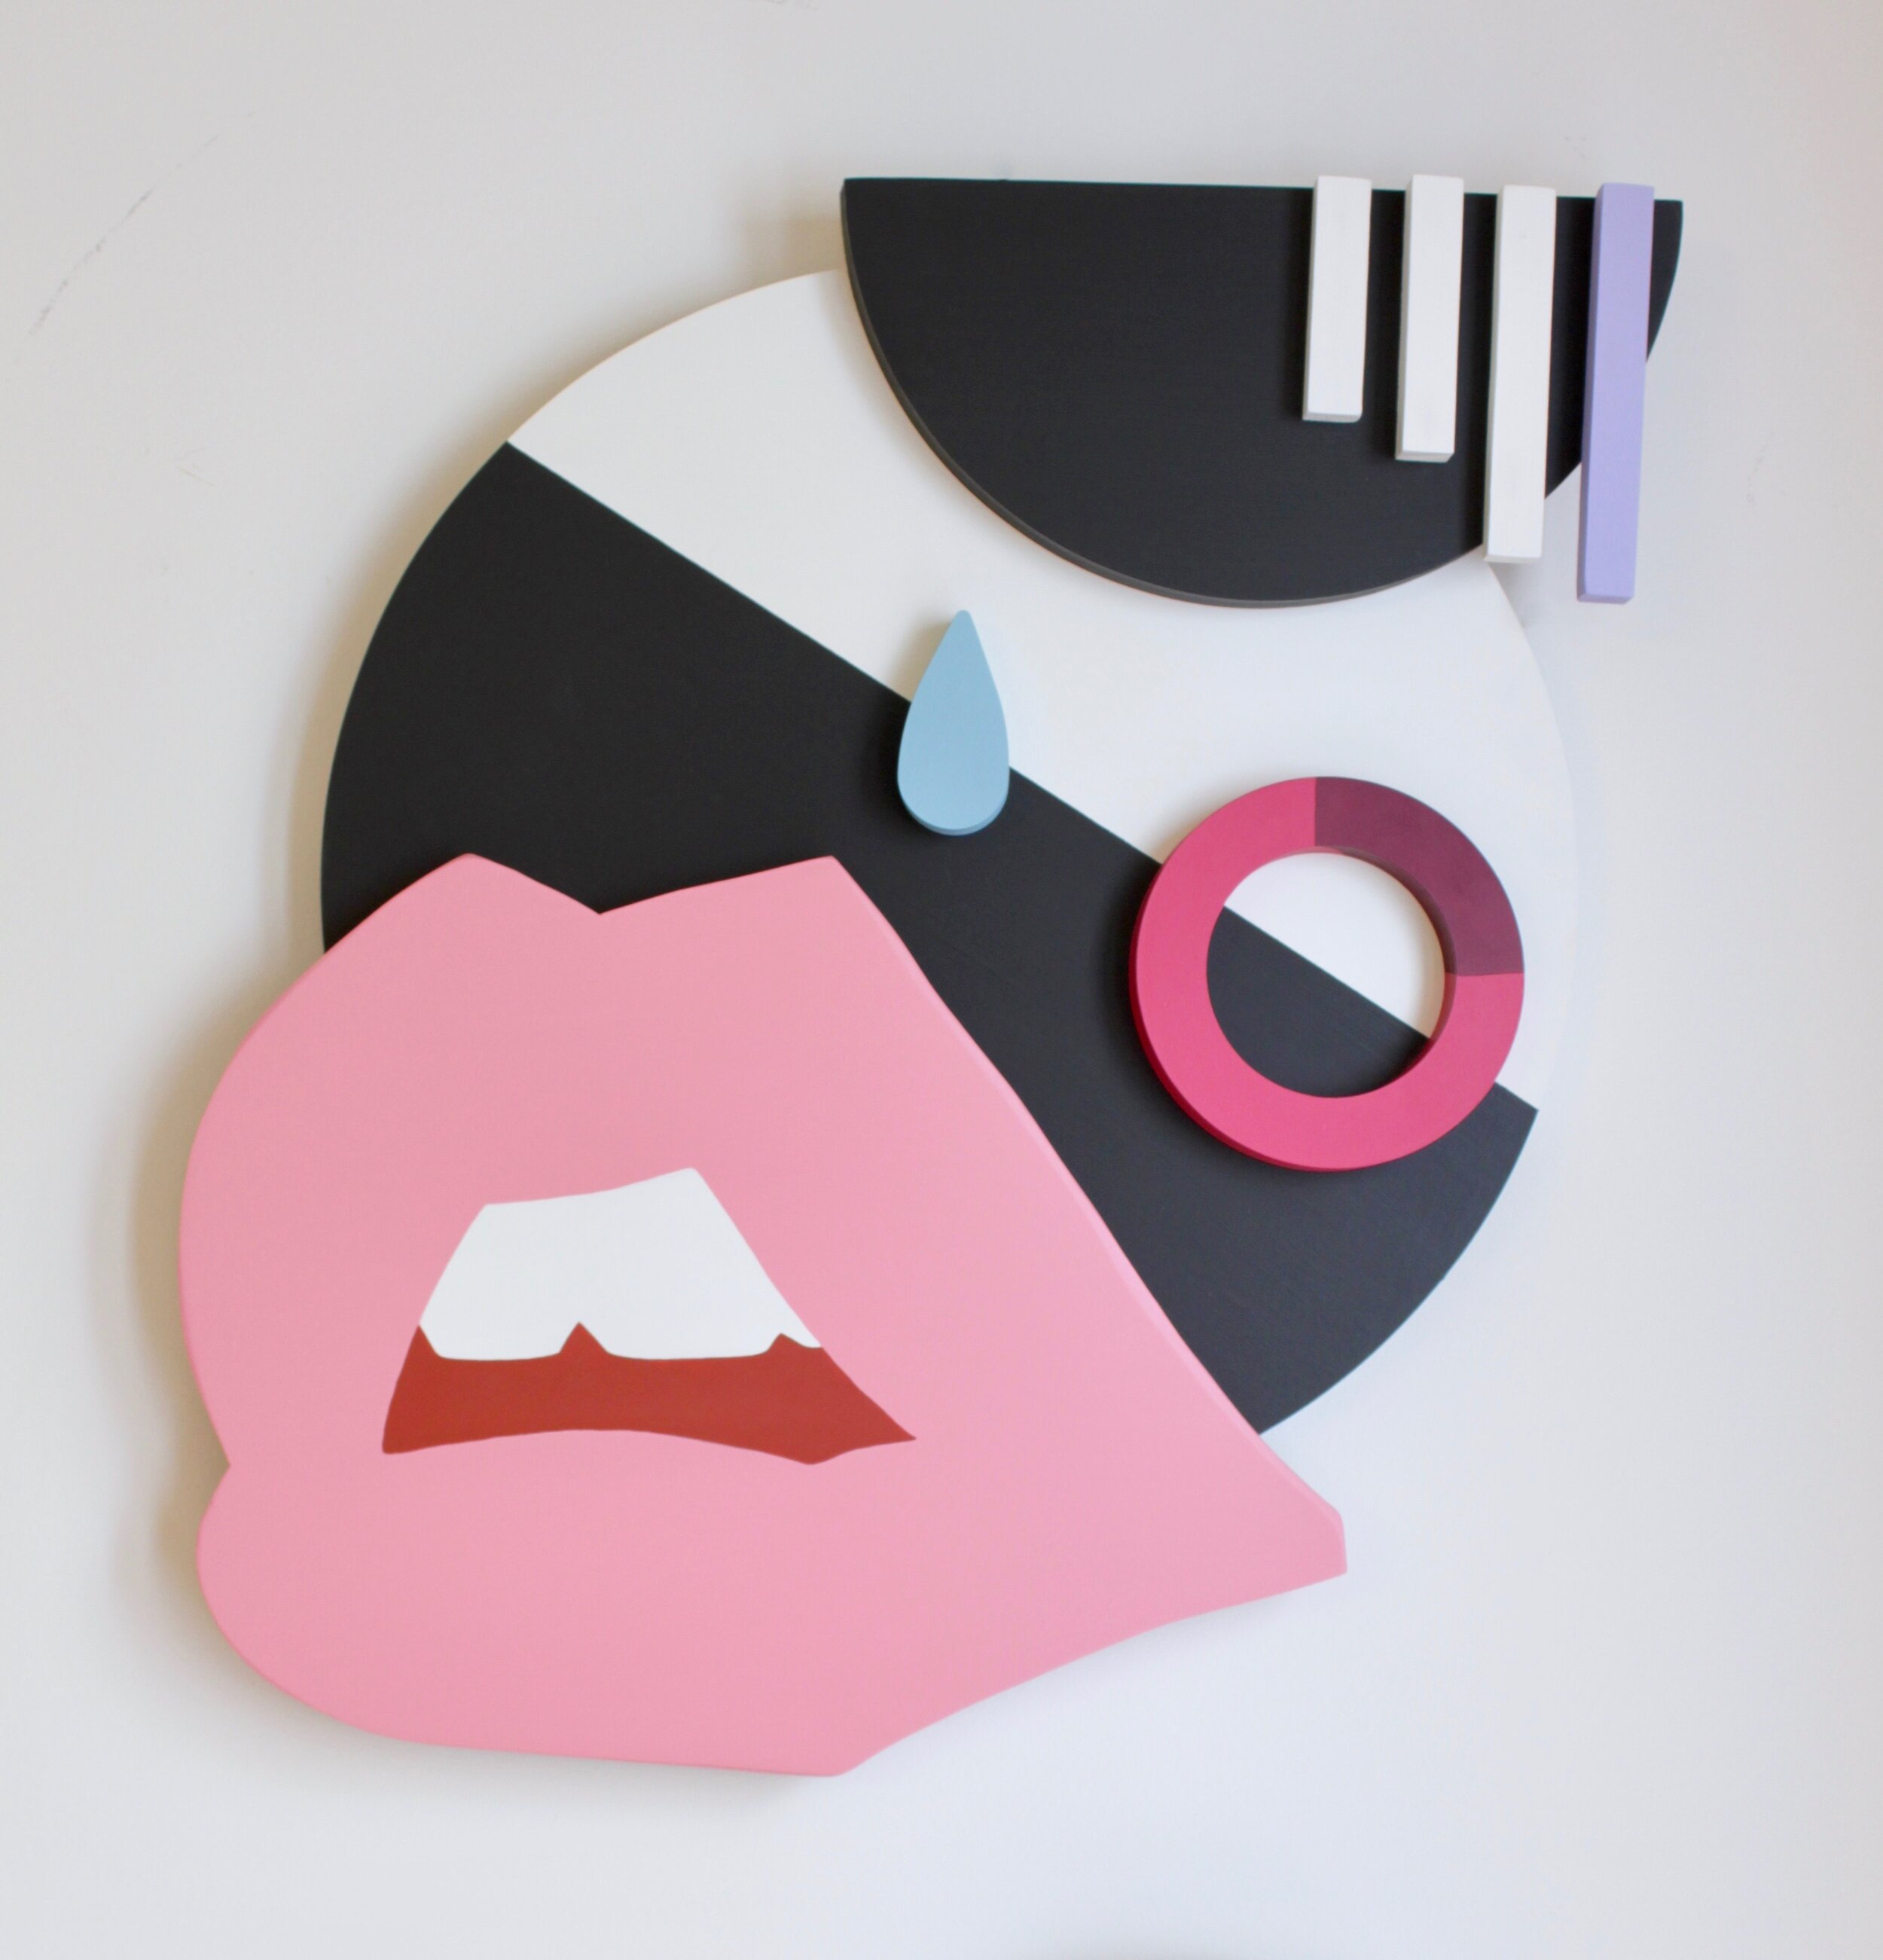 """Face No. 4 - 22.5"""" x 20"""" x 2.75"""" wood assemblage, latex paint on wood$1400"""